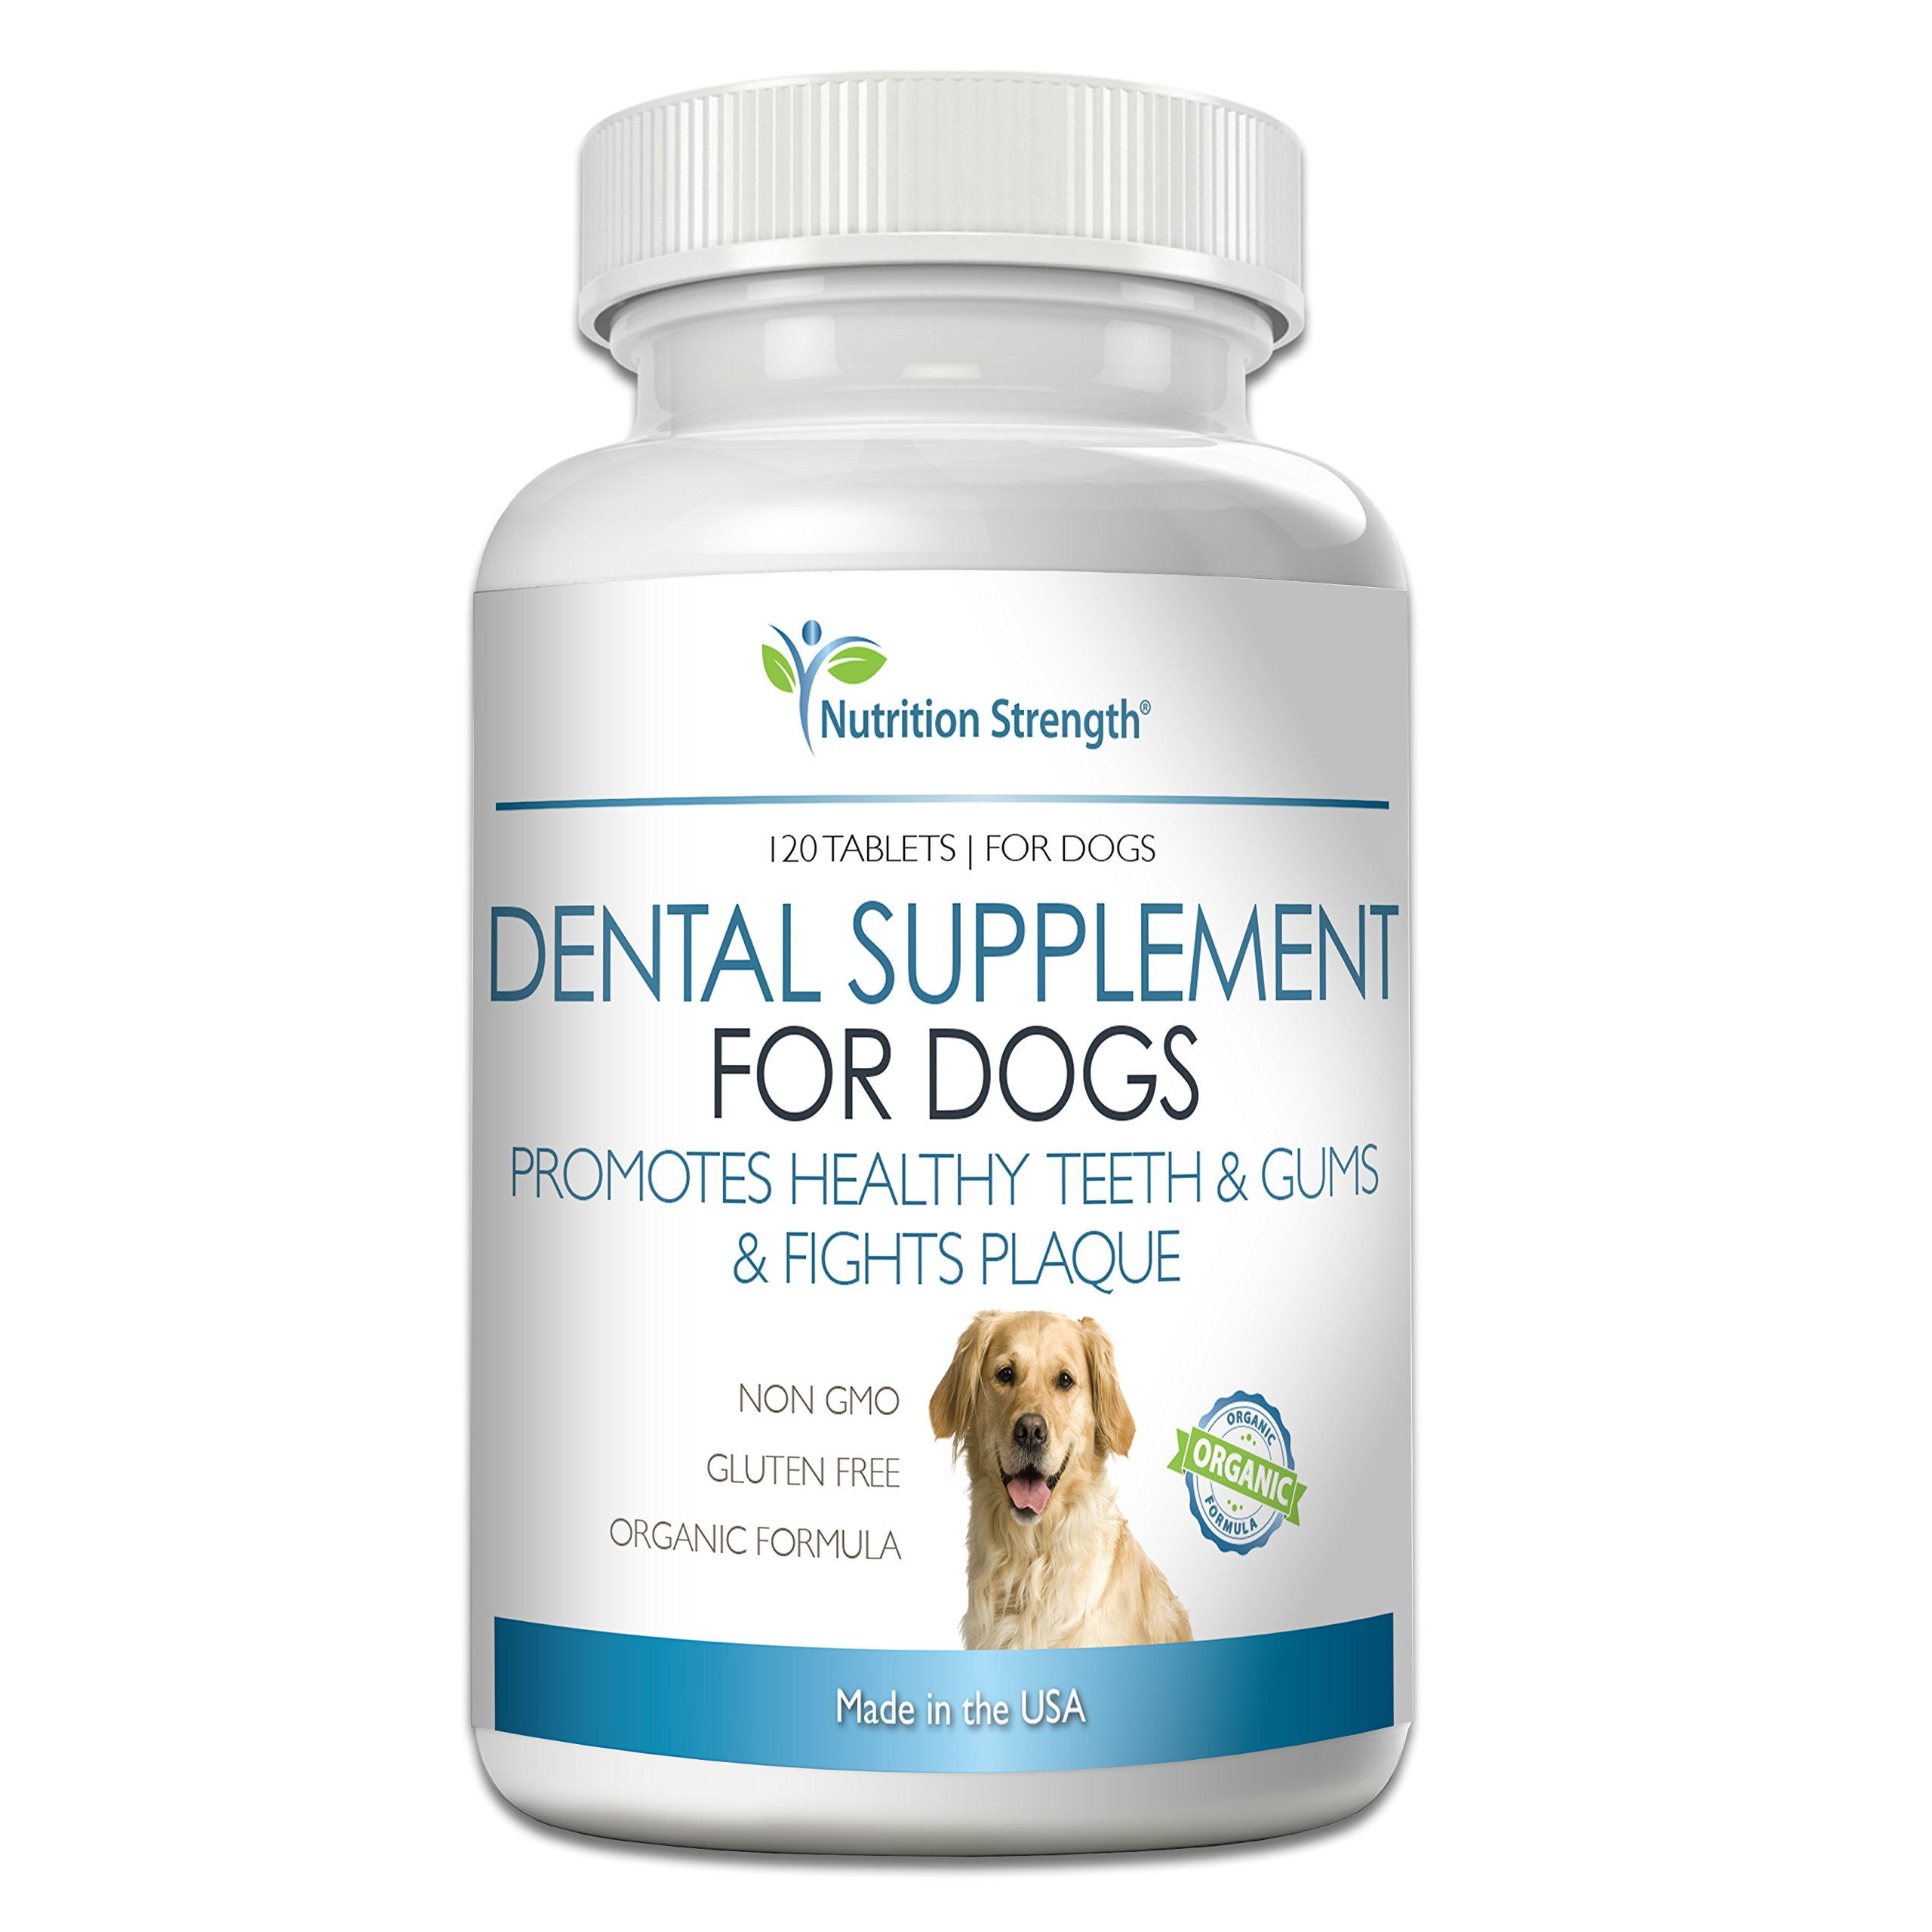 Nutrition Strength Dental Care for Dogs, Daily Supplement for Healthy Dog Gums and Teeth with All-Organic Ingredients, 120 Chewable Tablets by Nutrition Strength (Image #1)